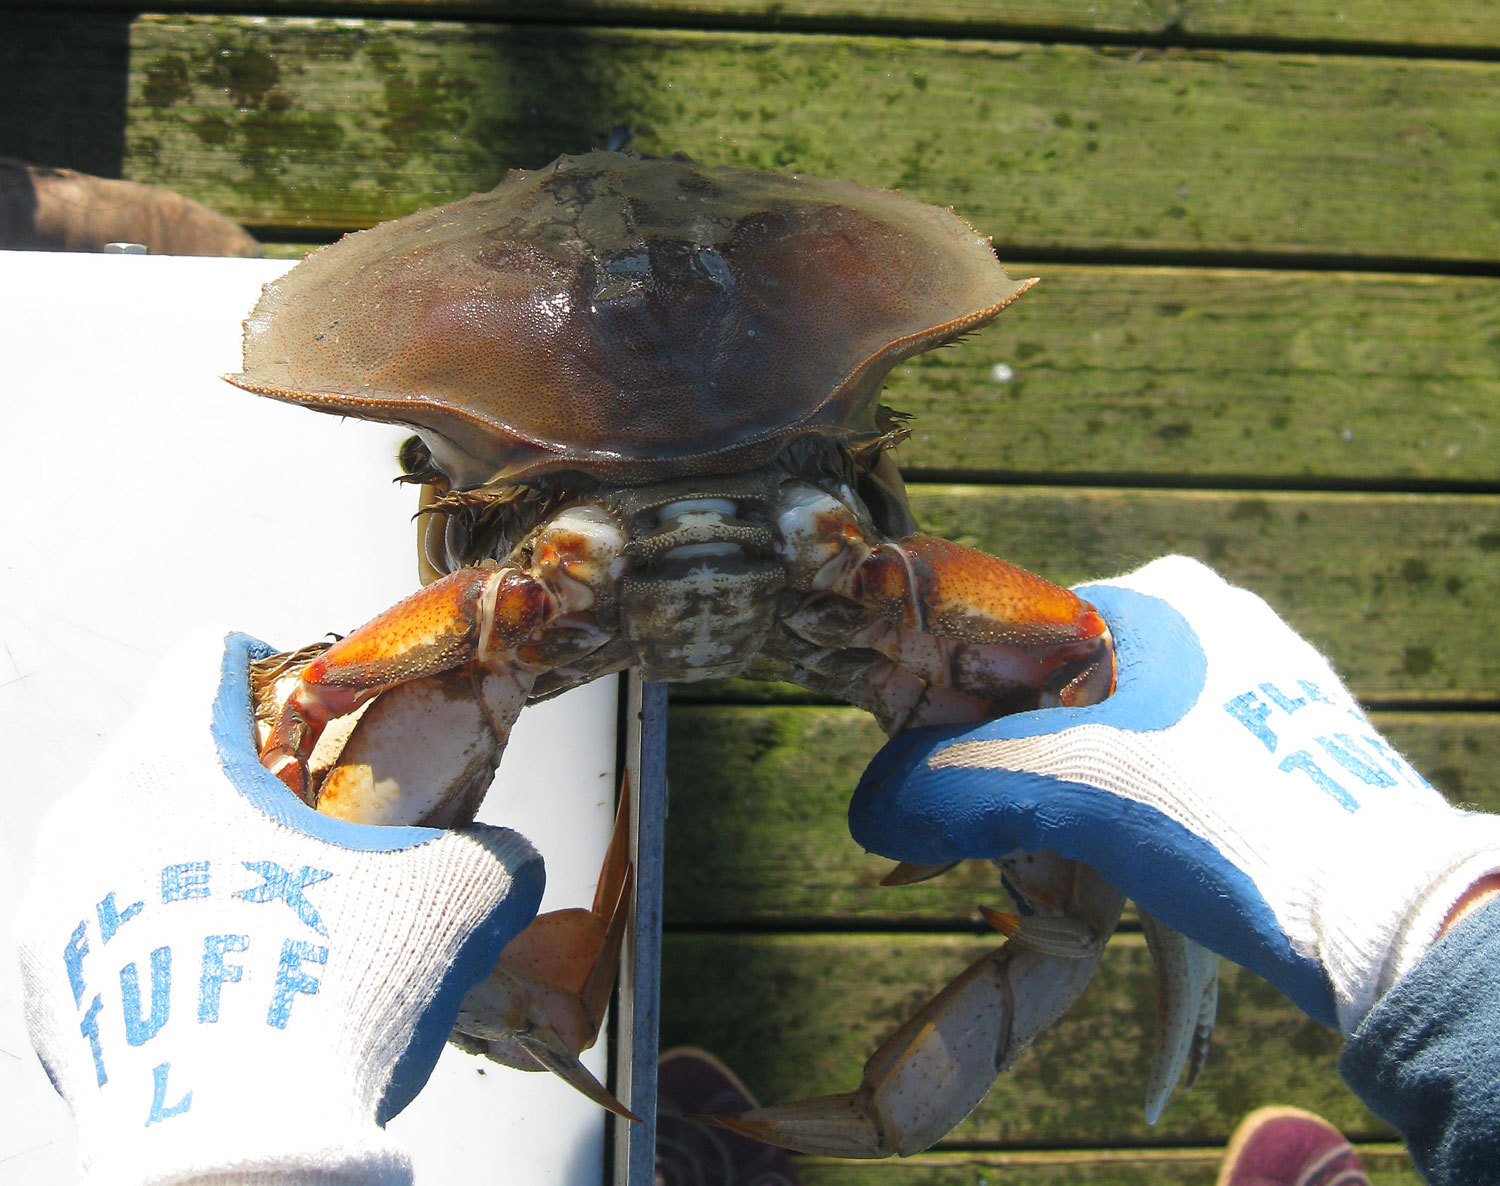 Dungeness crab cleaning